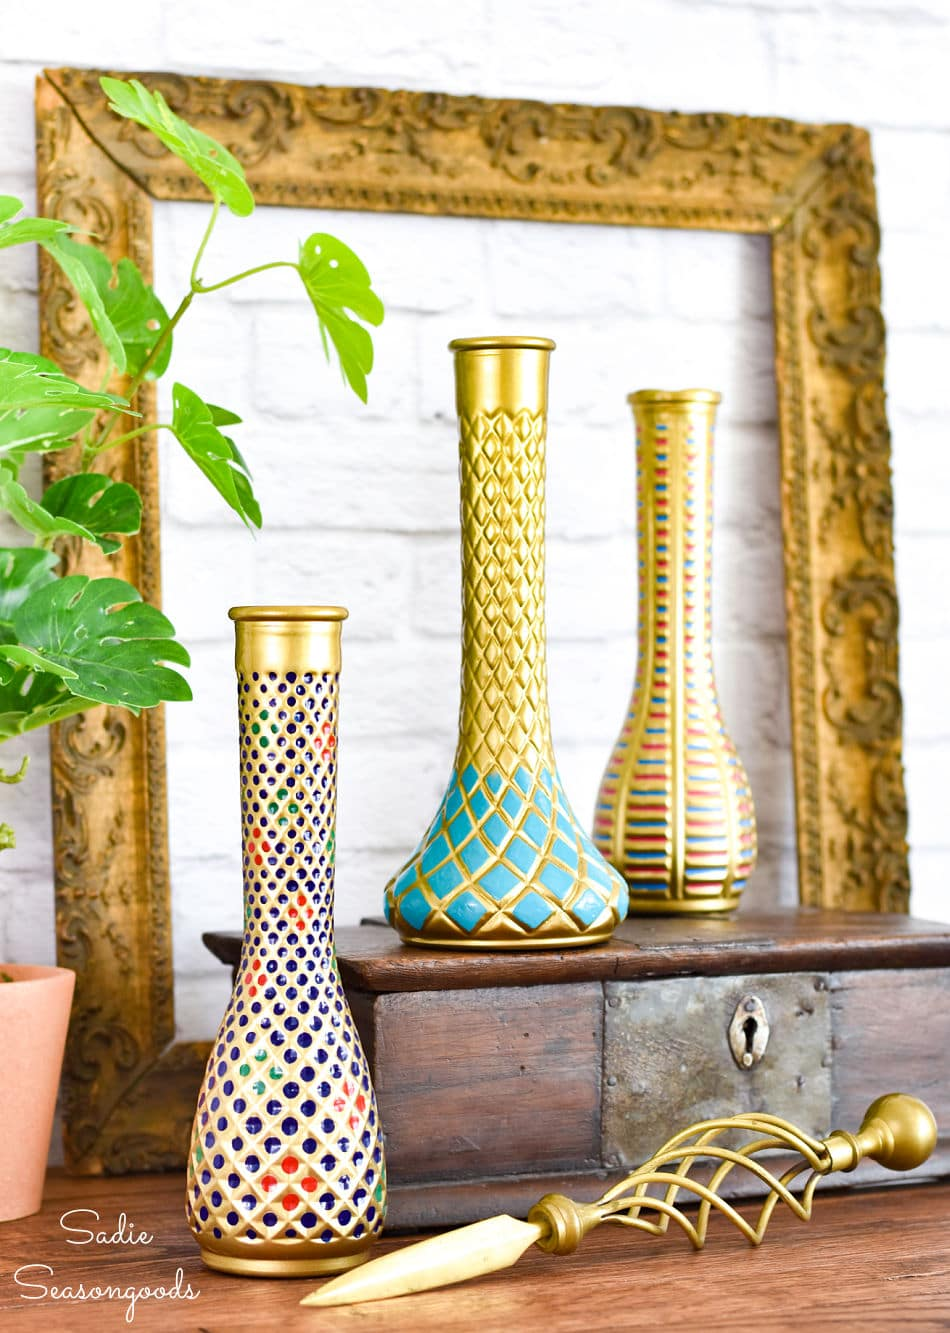 Global inspired decor with a cloisonne vase